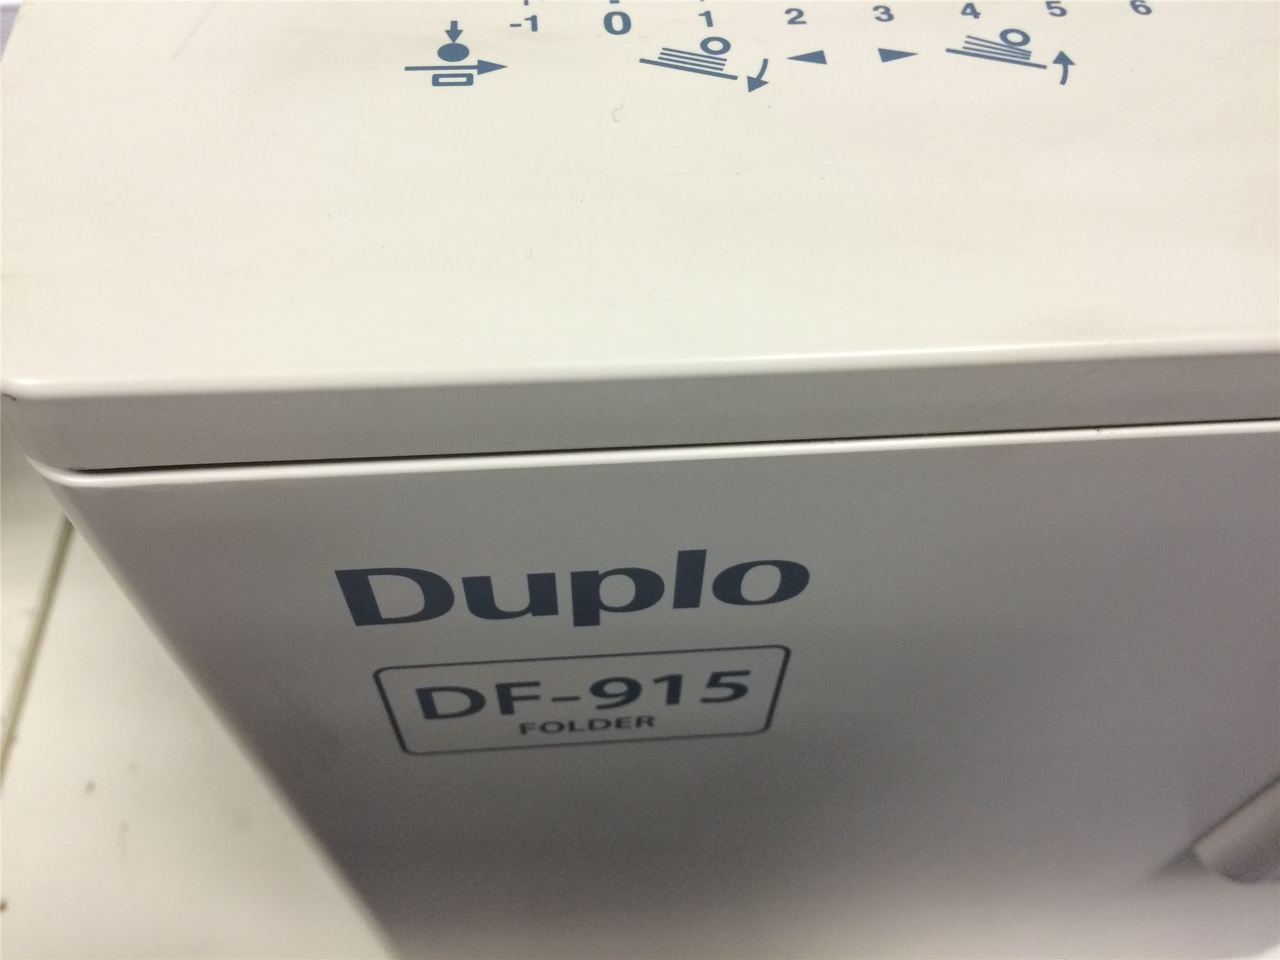 Duplo DF-915 - A3 A4 A5 Automatic Paper Folding Machine - REFURBISHED